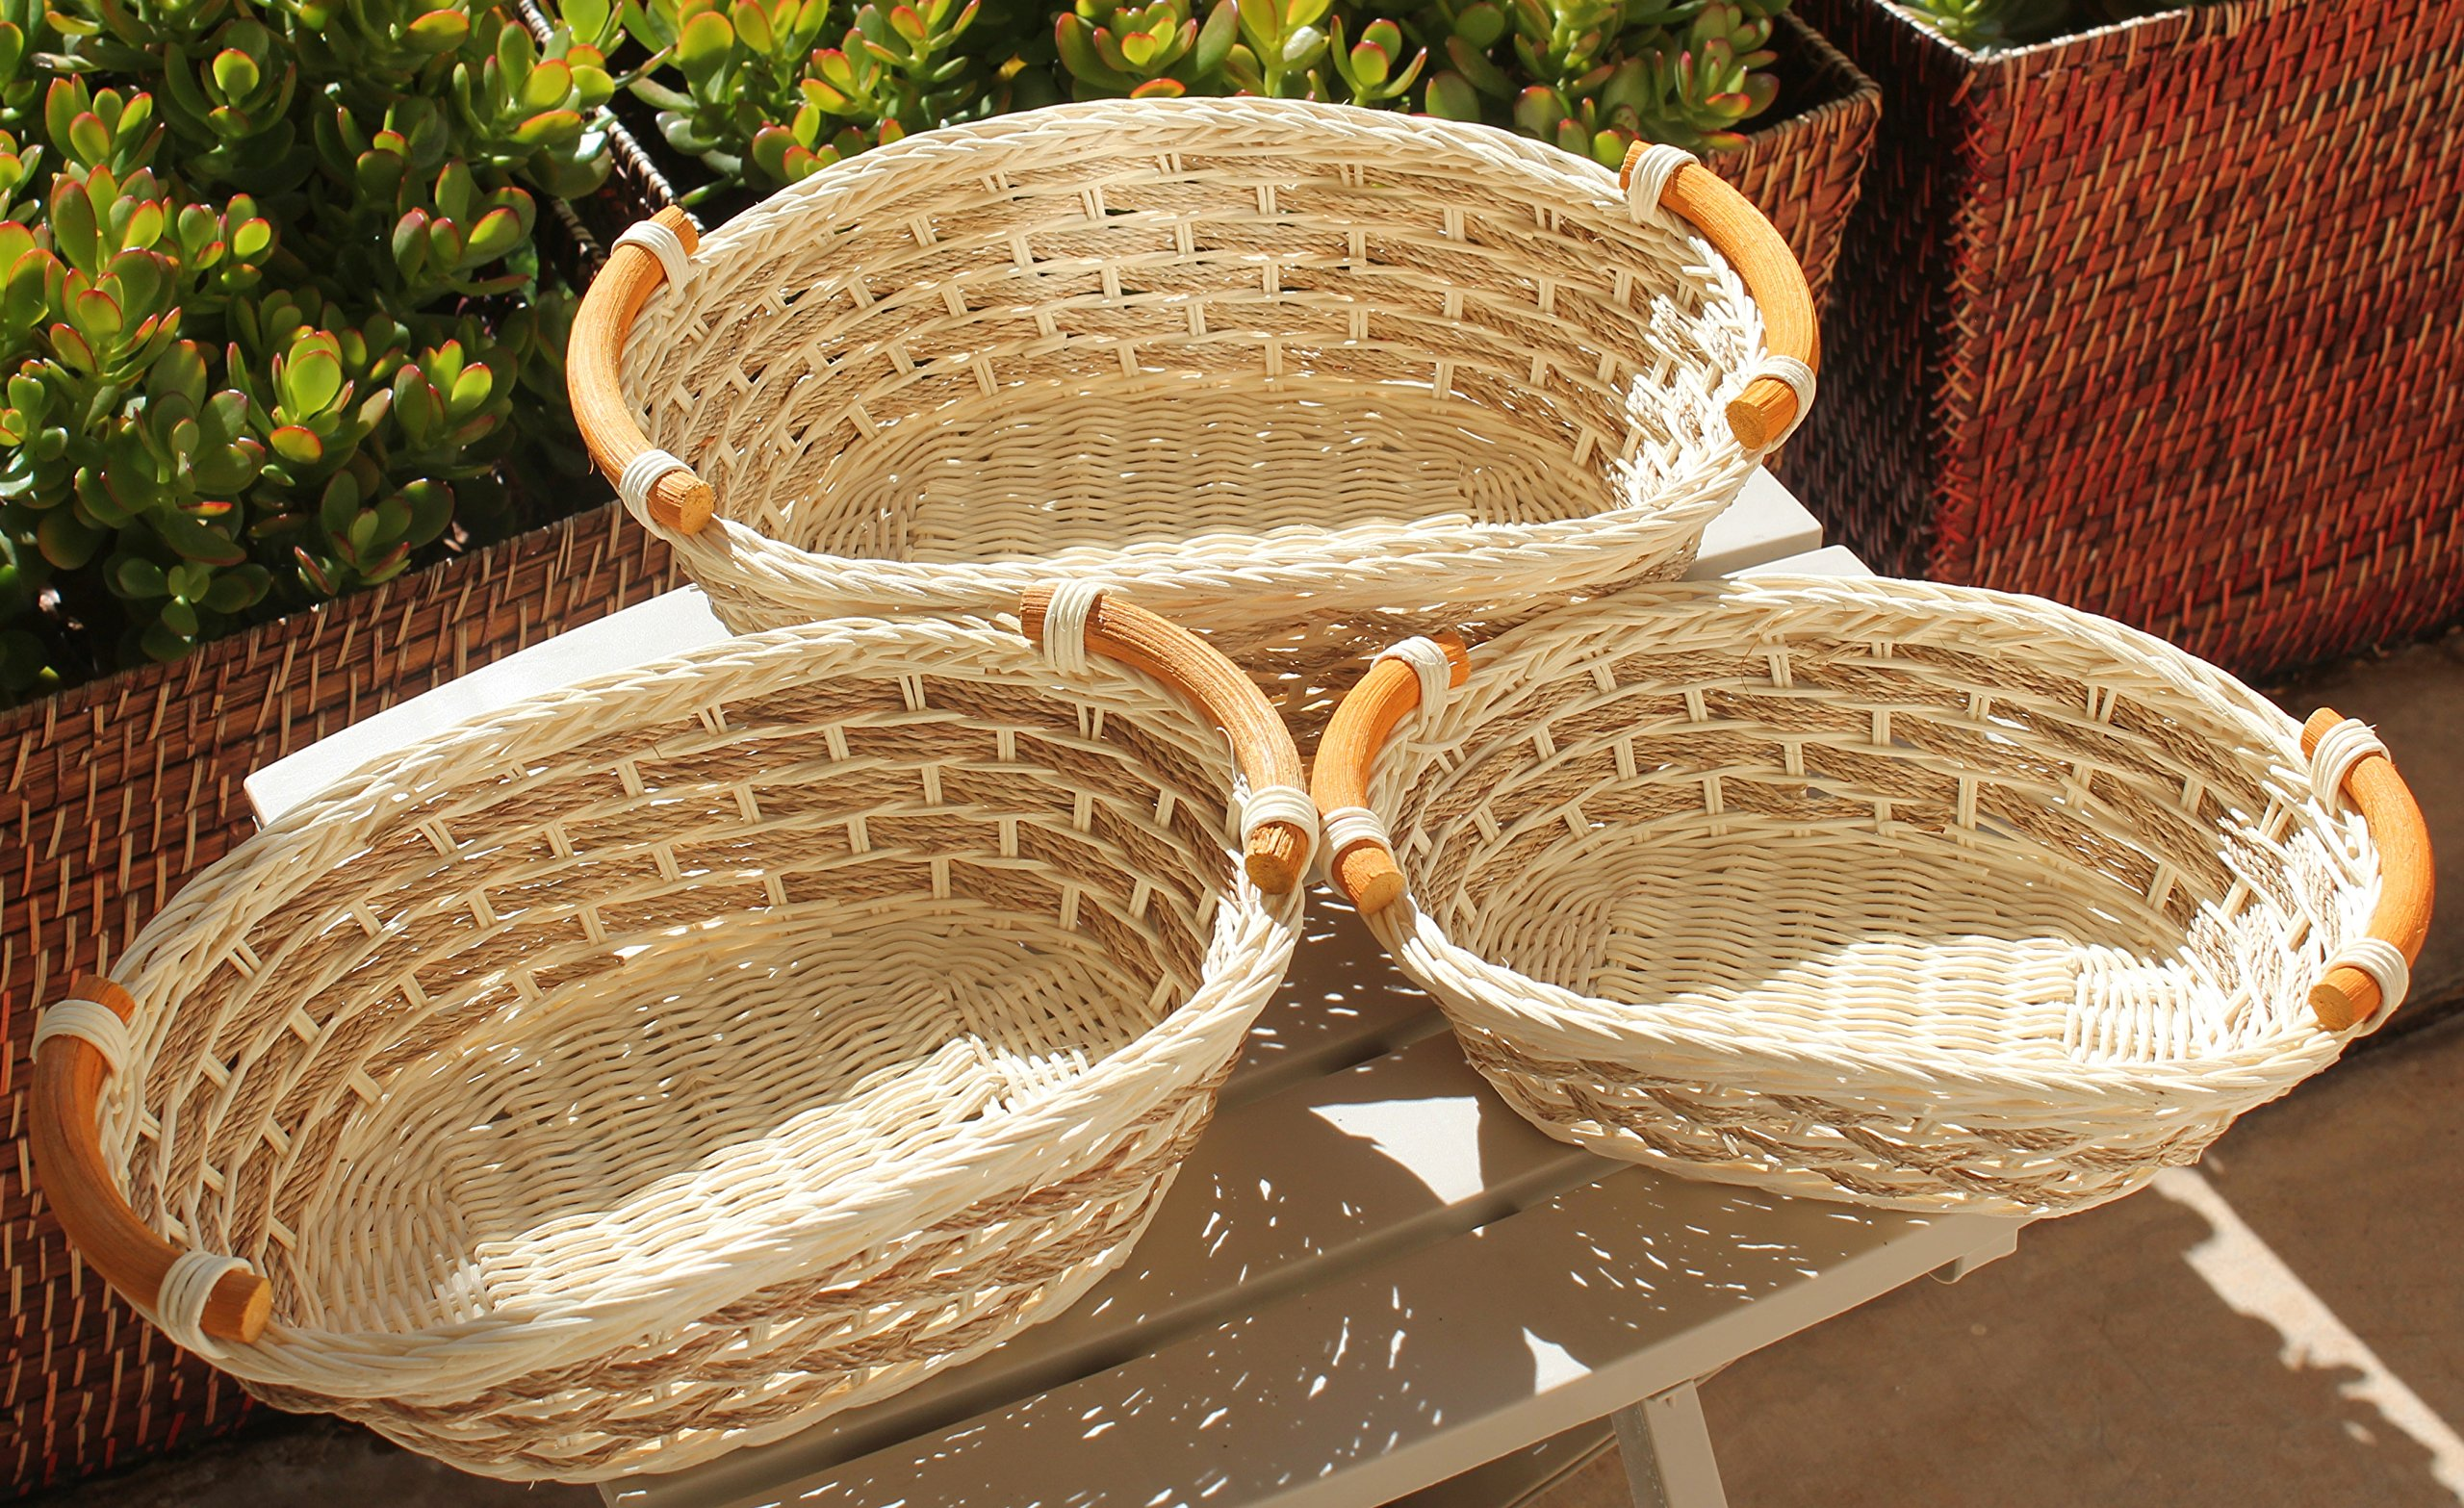 ShopOnNet RT450110-3 Handwoven Wicker Storage Basket Curve Pole Handle in Cream and Sand (Set of 3) - These are handmade eco-friendly wicker storage basket. These baskets are stackable, making storage easy and convenient. Made with durable rattan/Wicker material and each comes with a curve pole handle on each end of the basket. These wicker storage baskets are ideal to have at the dining table for holding bread or bake goods or for holding extra utensils for unexpected guests. They are also perfect to have in the kitchen or bathroom for holding napkins, cotton balls or other beauty tools and products. - living-room-decor, living-room, baskets-storage - 91ejh6SBWzL -